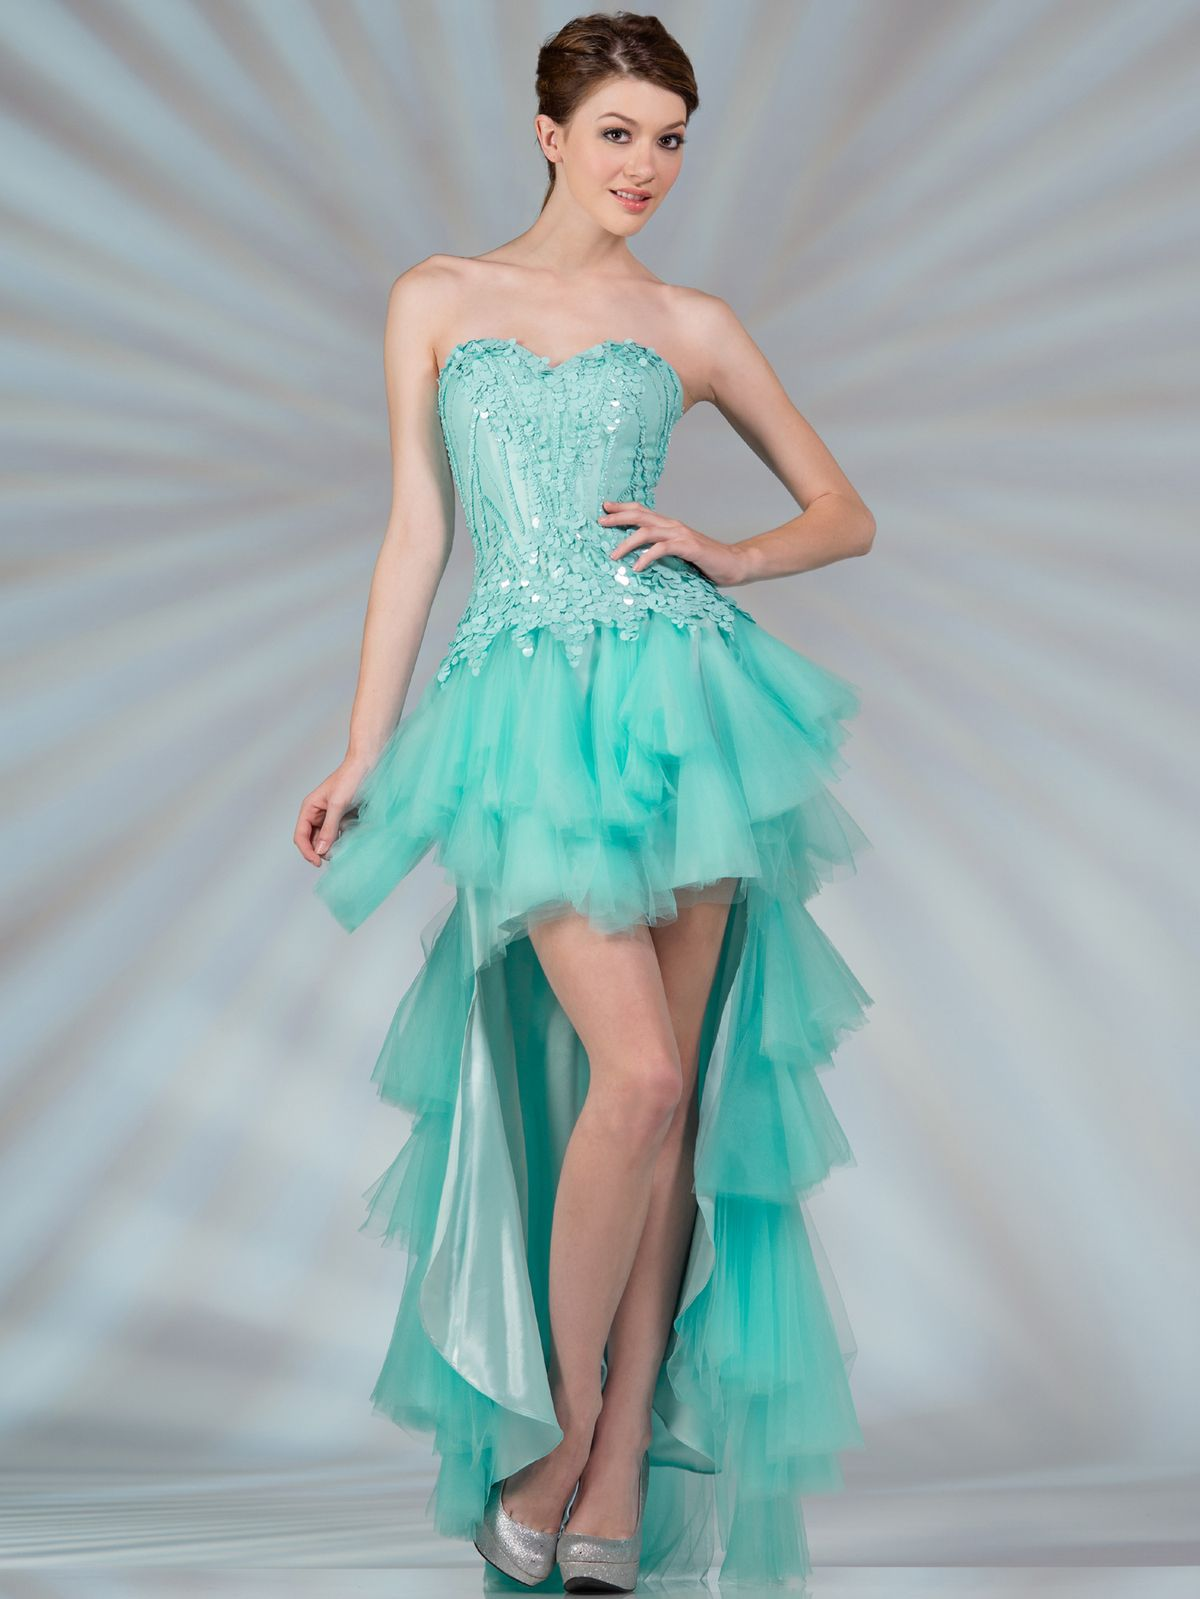 Layered Mesh High Low Prom Dress. Style #: JC2507. Get yours today at SungBoutiqueLA.com